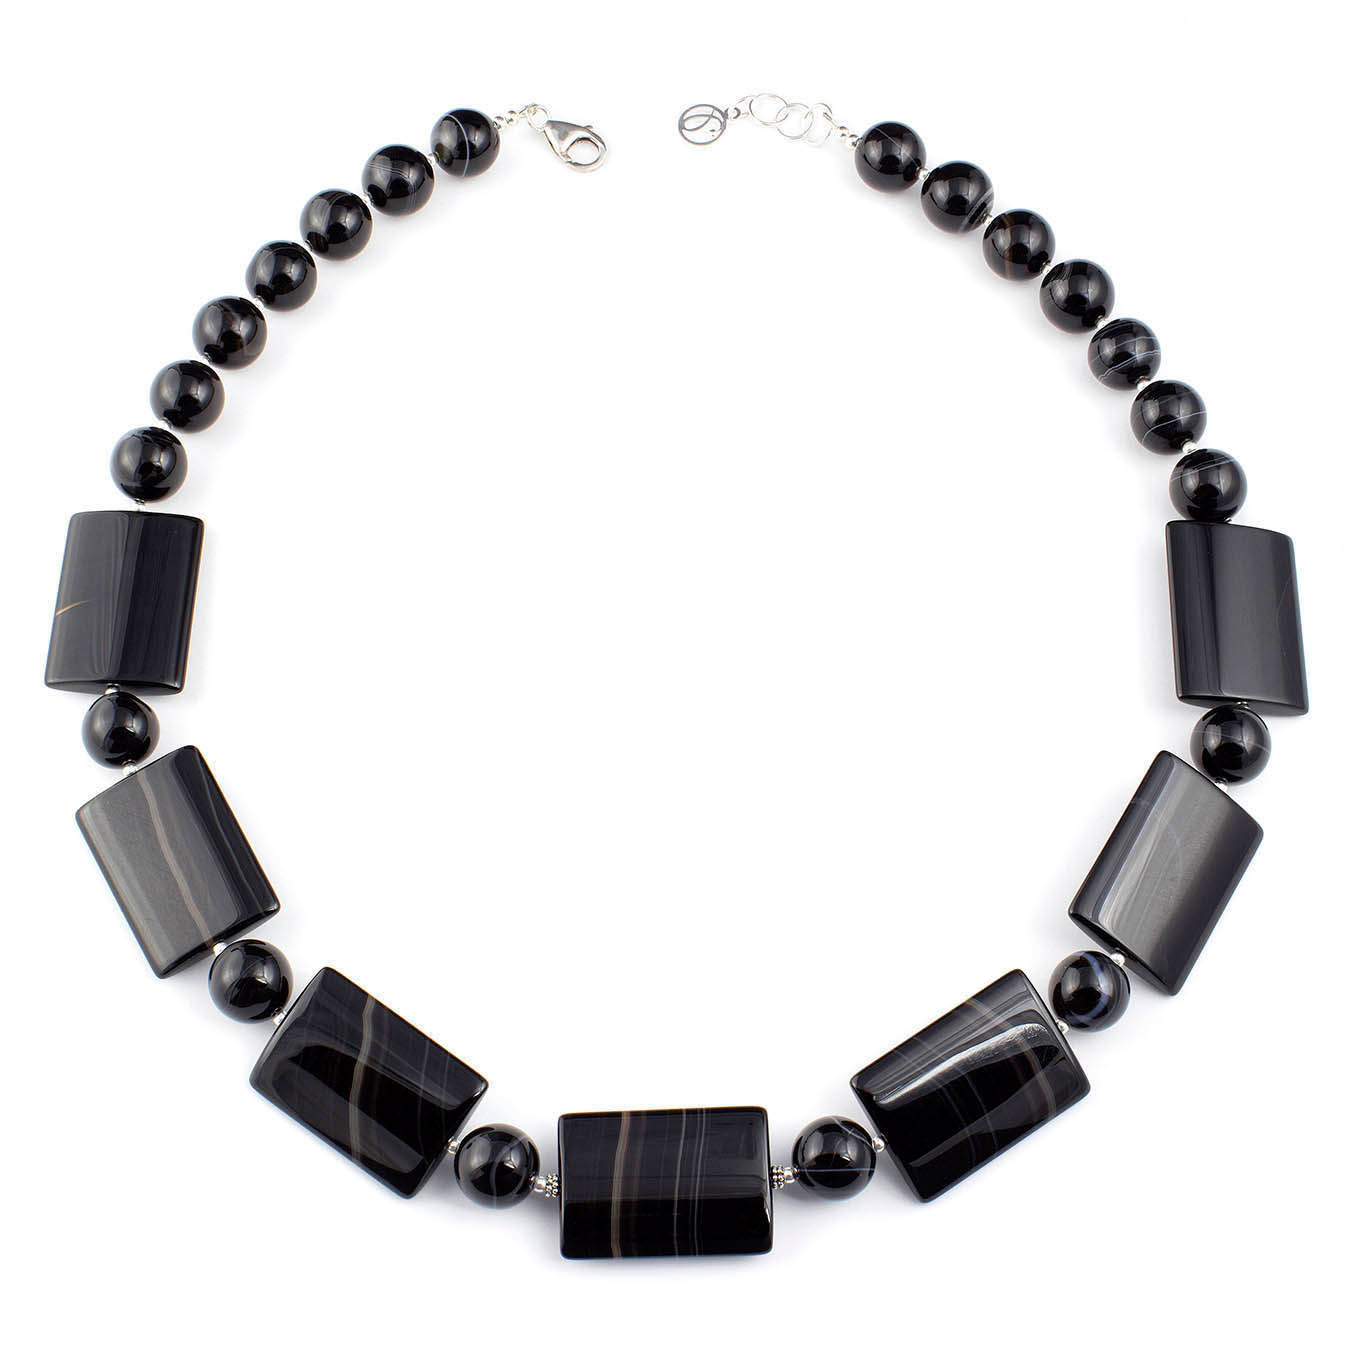 Handmade collar jewelry necklace with chunky black lace agate gemstone